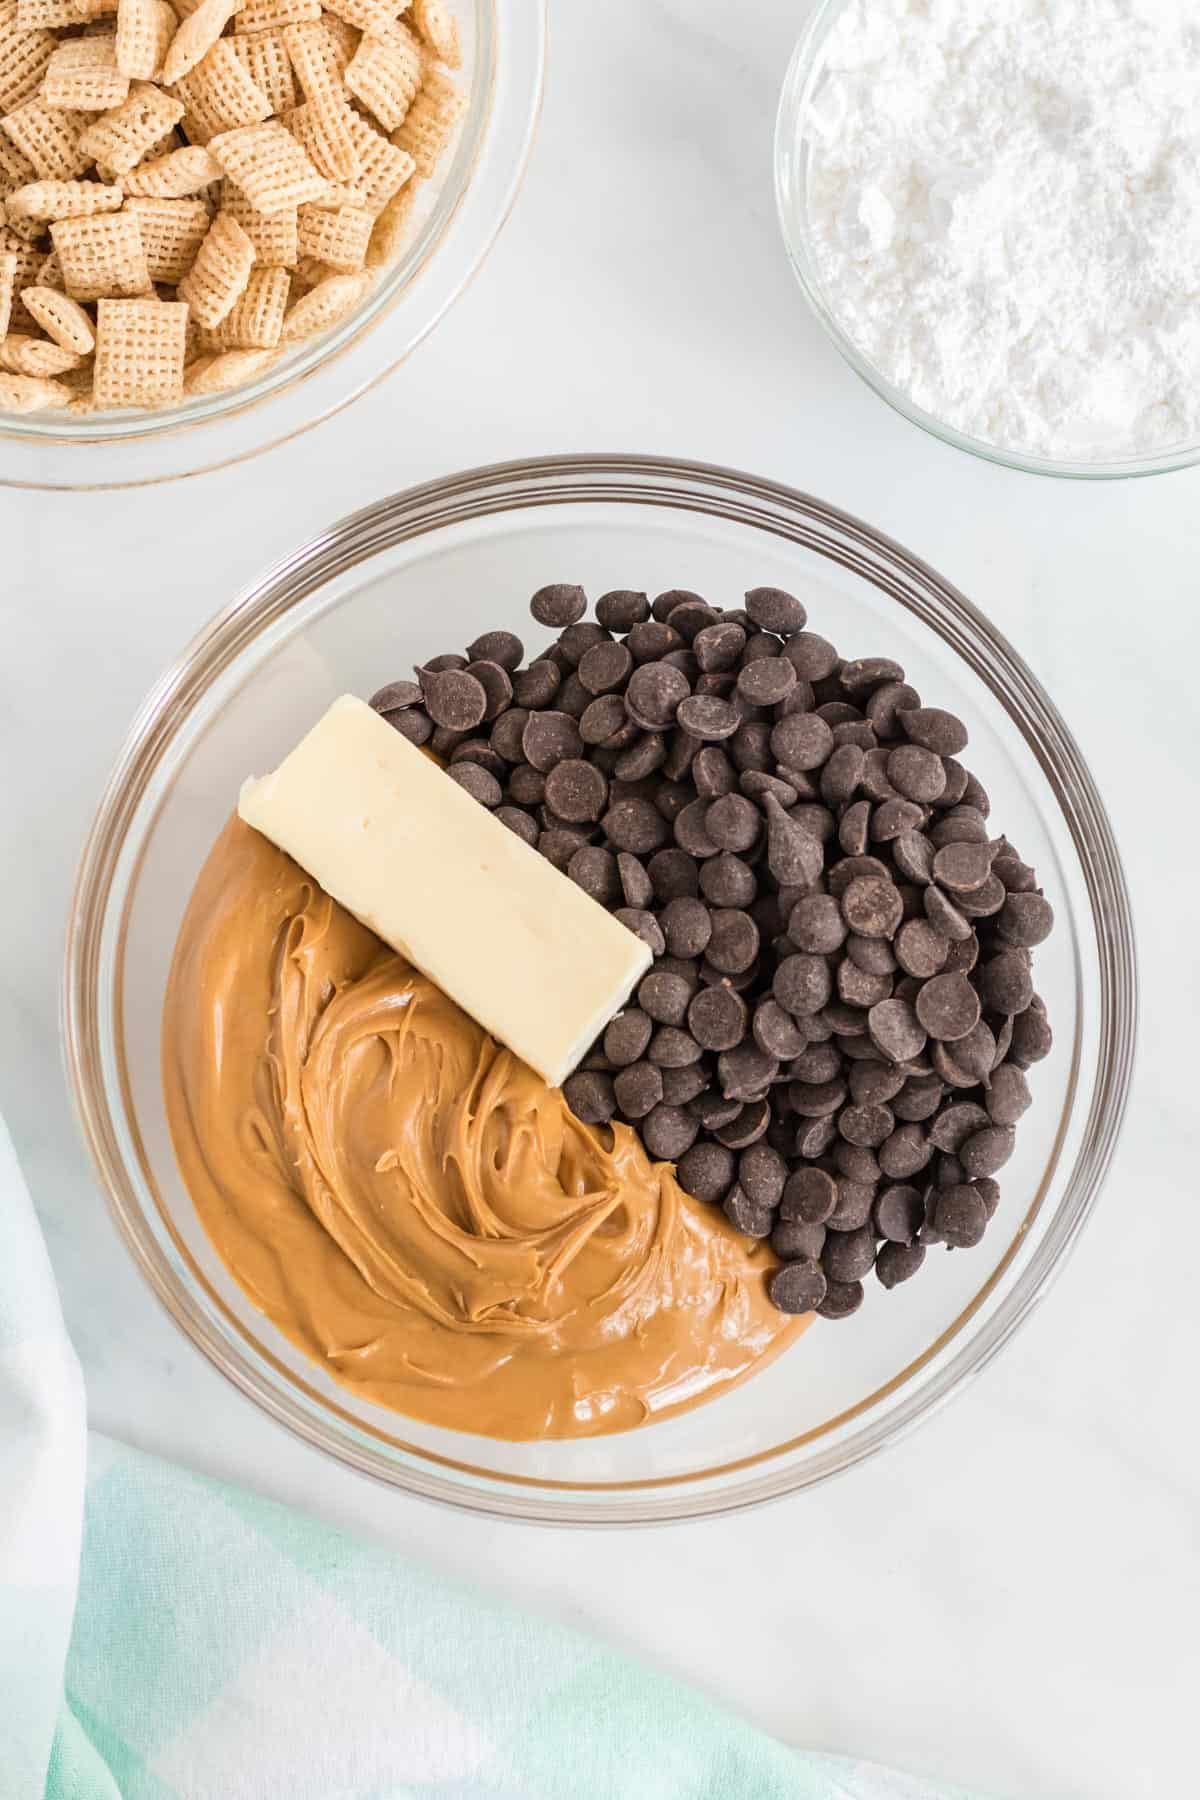 peanut butter, vegan butter, and chocolate chips in a bowl